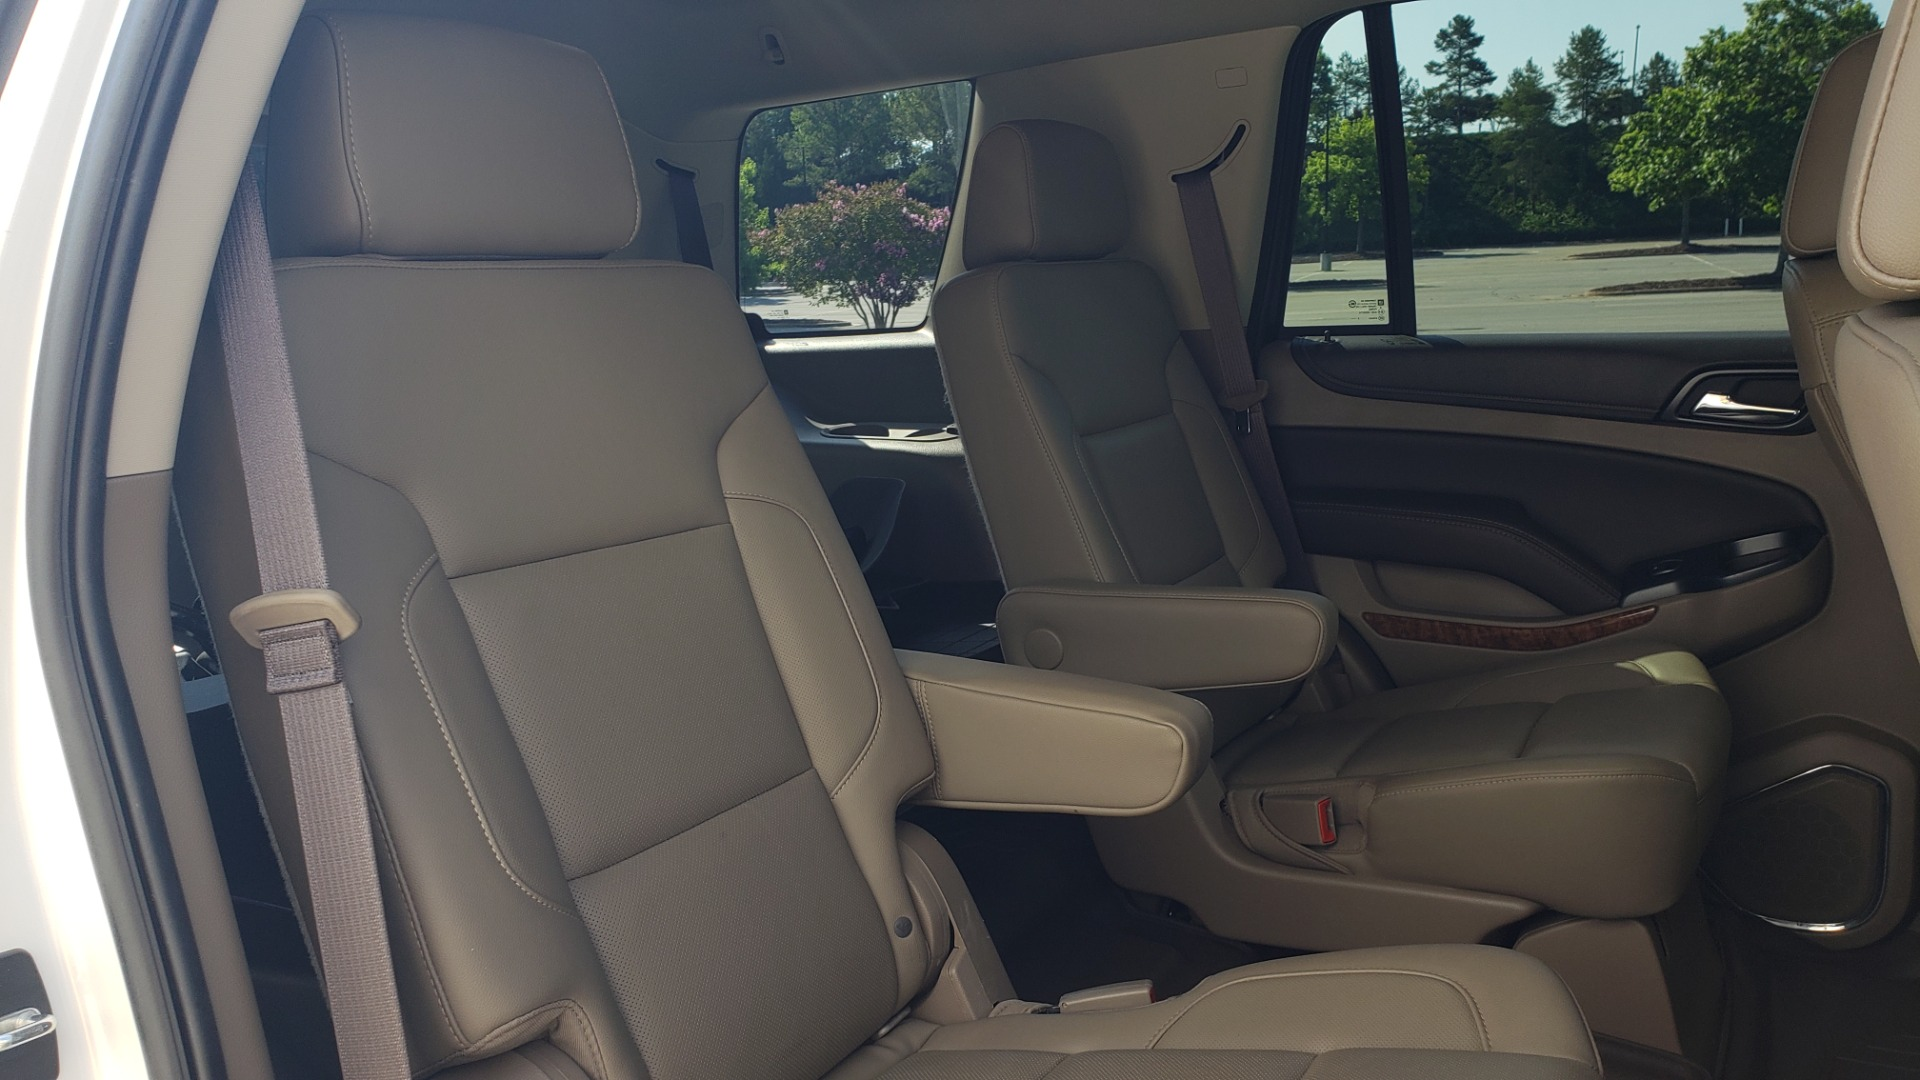 Used 2018 Chevrolet TAHOE PREMIER 4X4 / NAV / BOSE / SUNROOF / ENT SYS / 3-ROW / REARVIEW for sale $55,995 at Formula Imports in Charlotte NC 28227 74